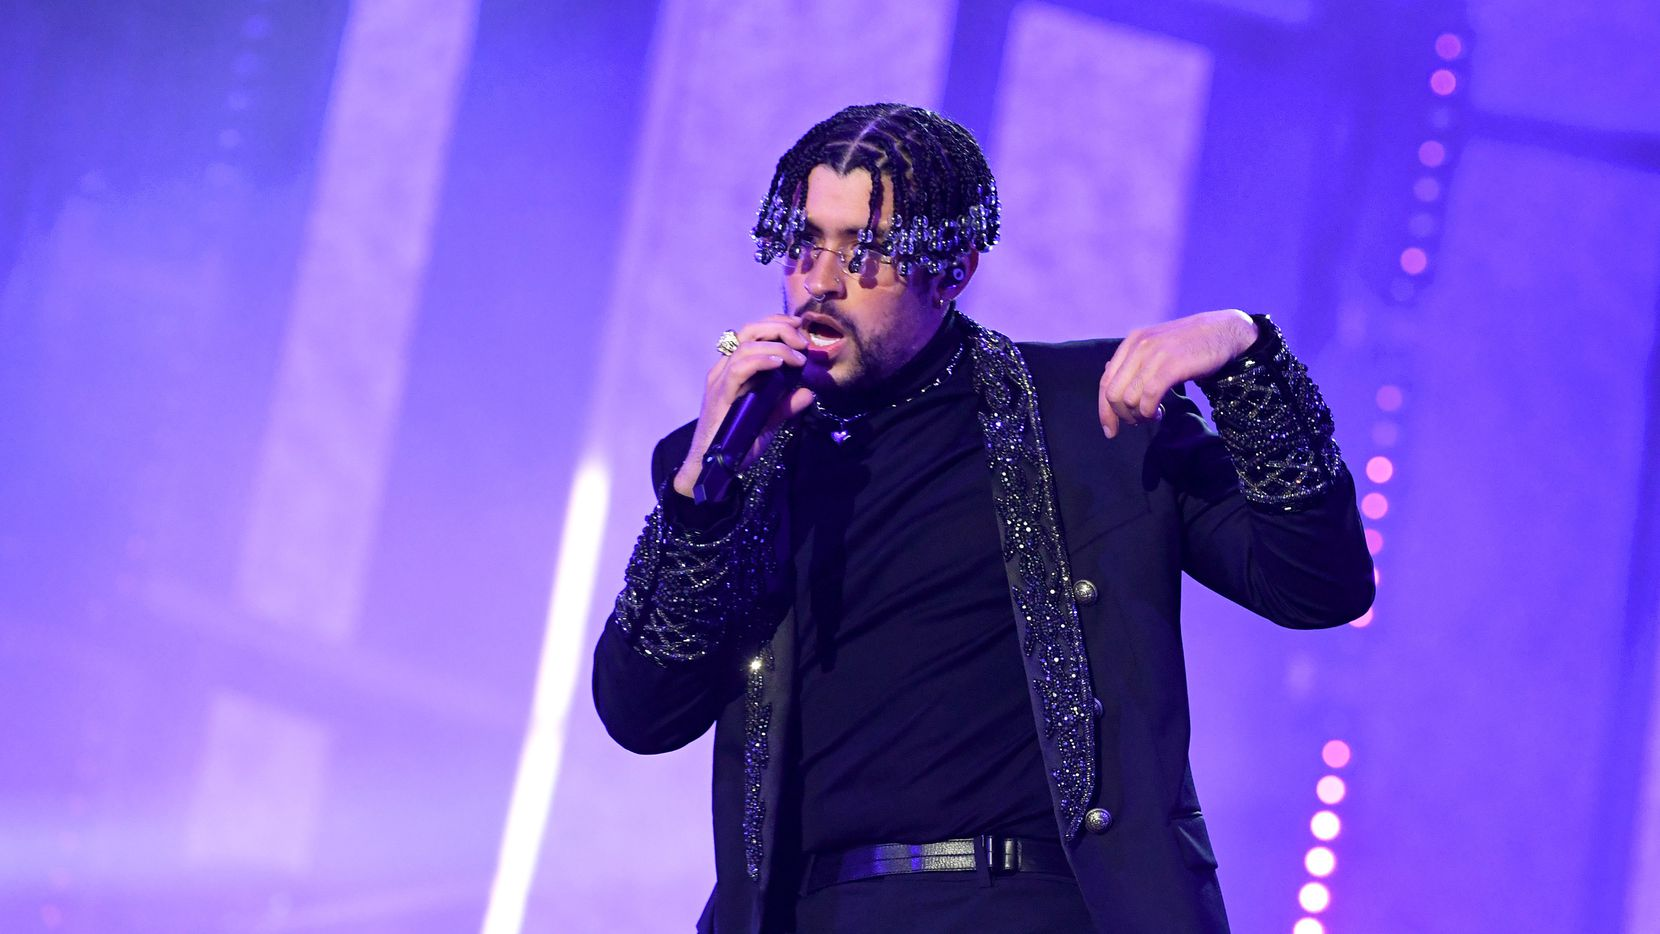 Bad Bunny performs at the 2020 Billboard Music Awards at the Dolby Theatre in Los Angeles.